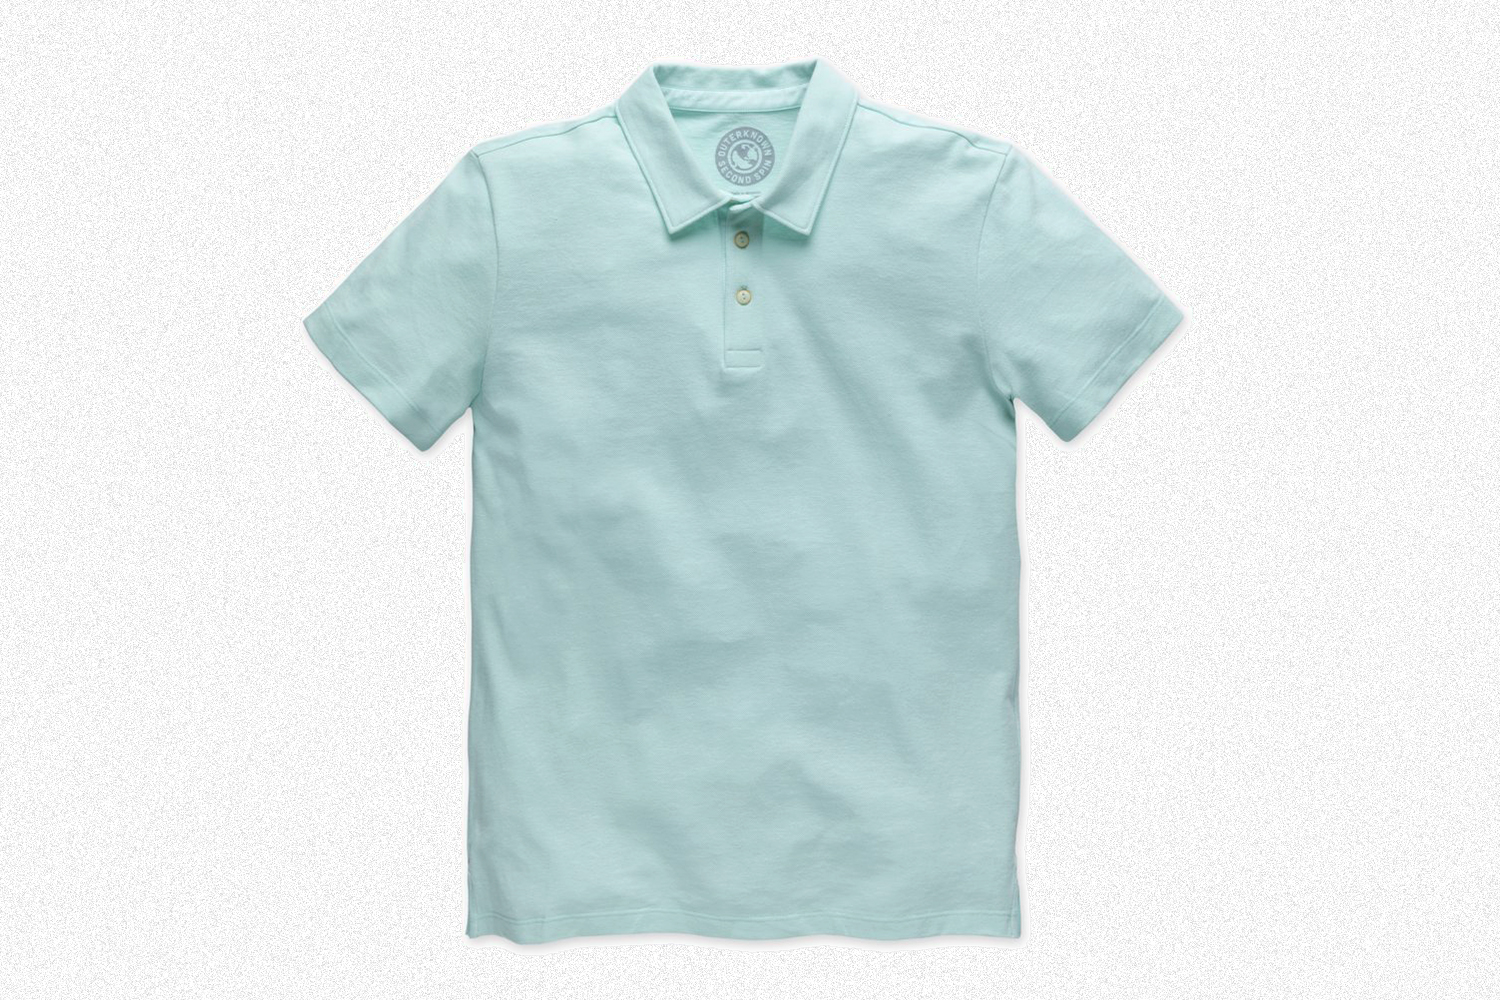 A light blue men's polo from Kelly Slater's brand Outerknown